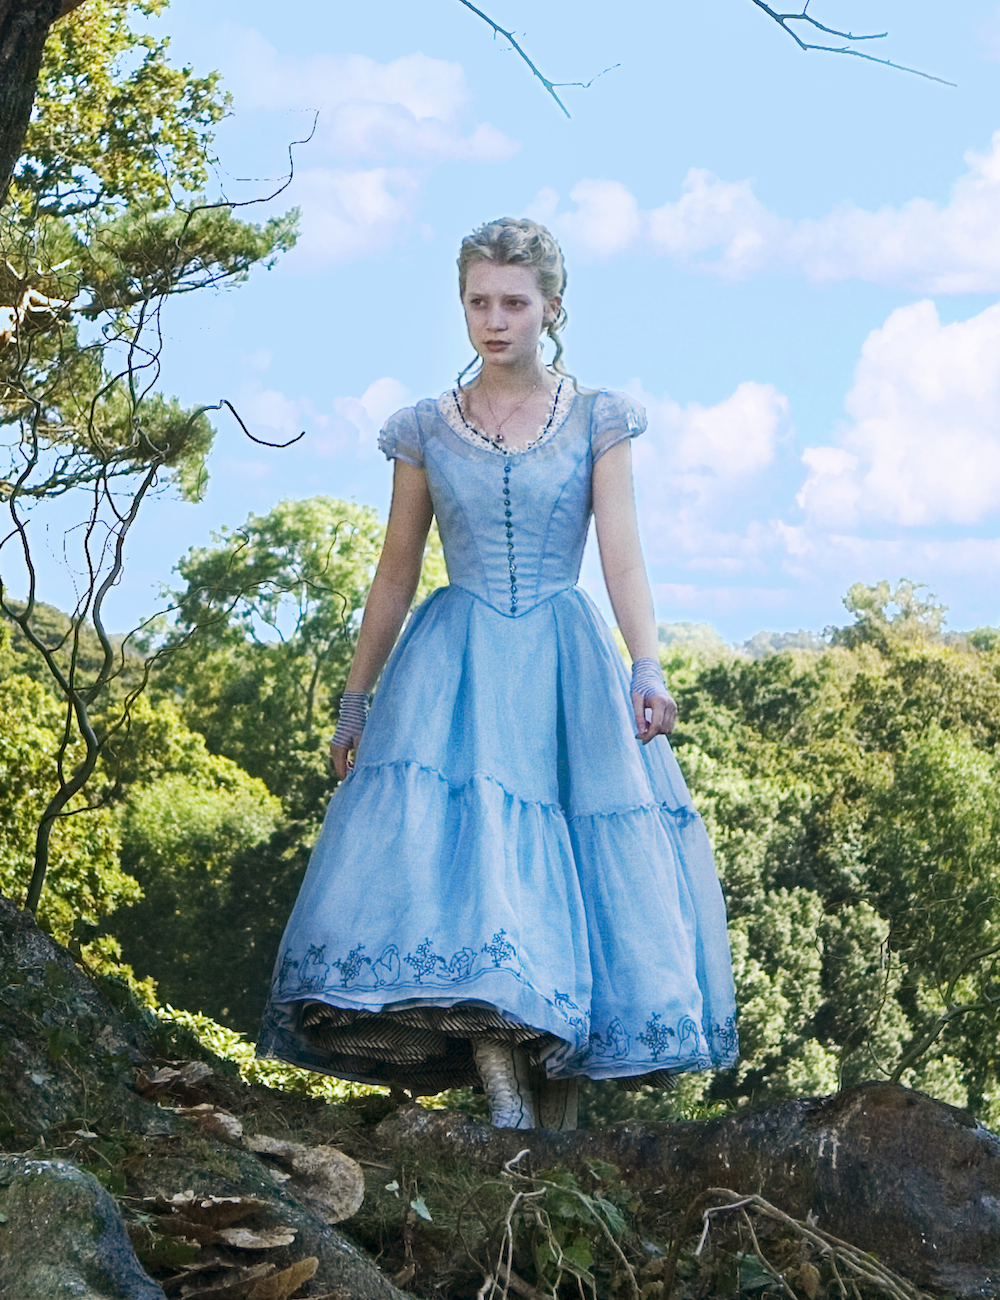 mia wasikowska alice - Google Search | Atrizes, Vestidos ...